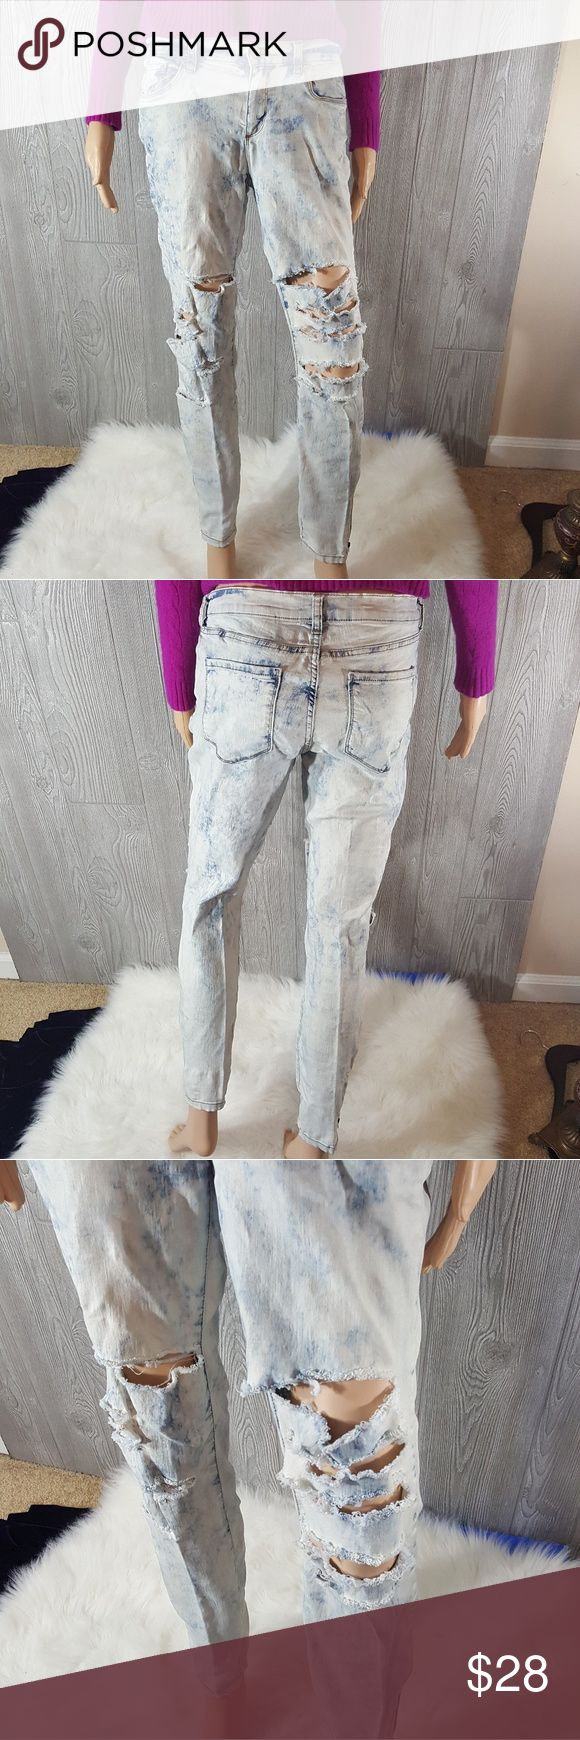 29 (8) Joe Fresh acid wash slim low rise coupe Gorgeous joe fresh jeans. Stylish acid light wash is major factory destroy. Zippers accentuate the ankles. Very comfortable because they are extremely stretchy to accentuate all of your beautiful curves. Laying flat 15in waist 9 in waist 28in inseam Joe Fresh Jeans Skinny